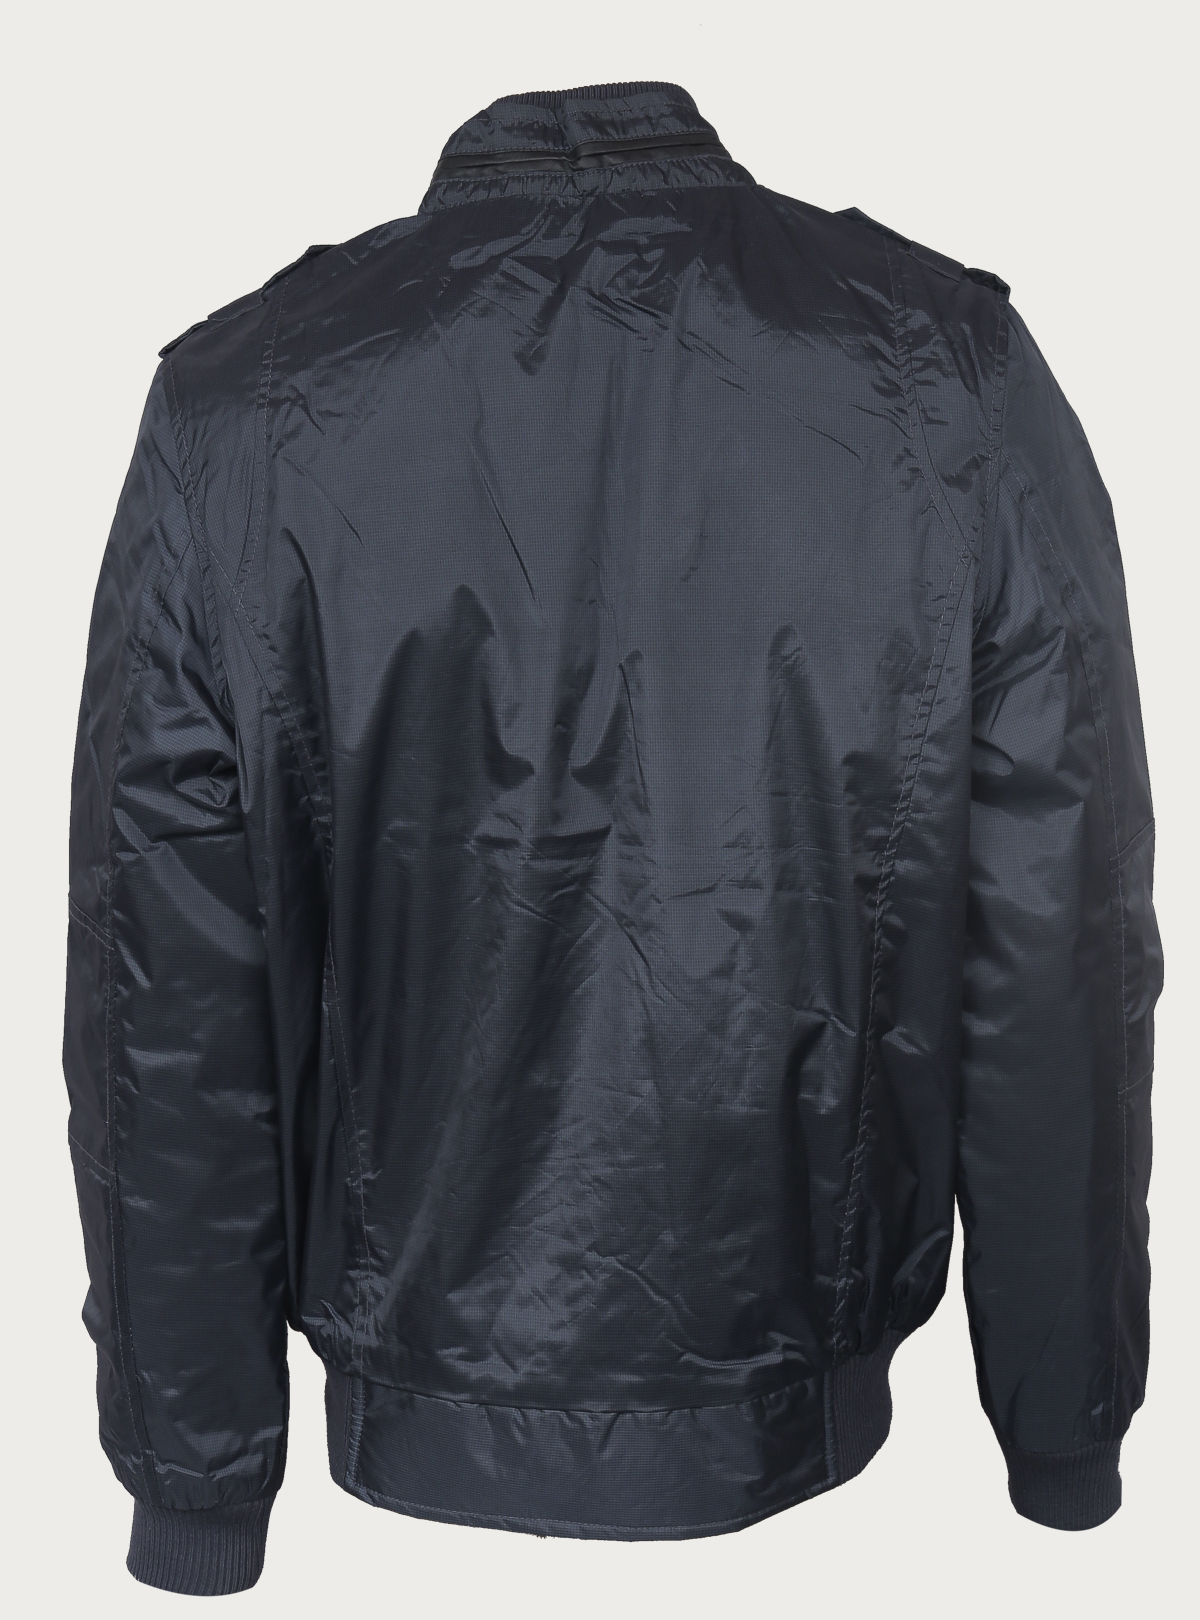 Winter Jacket By Rd Length